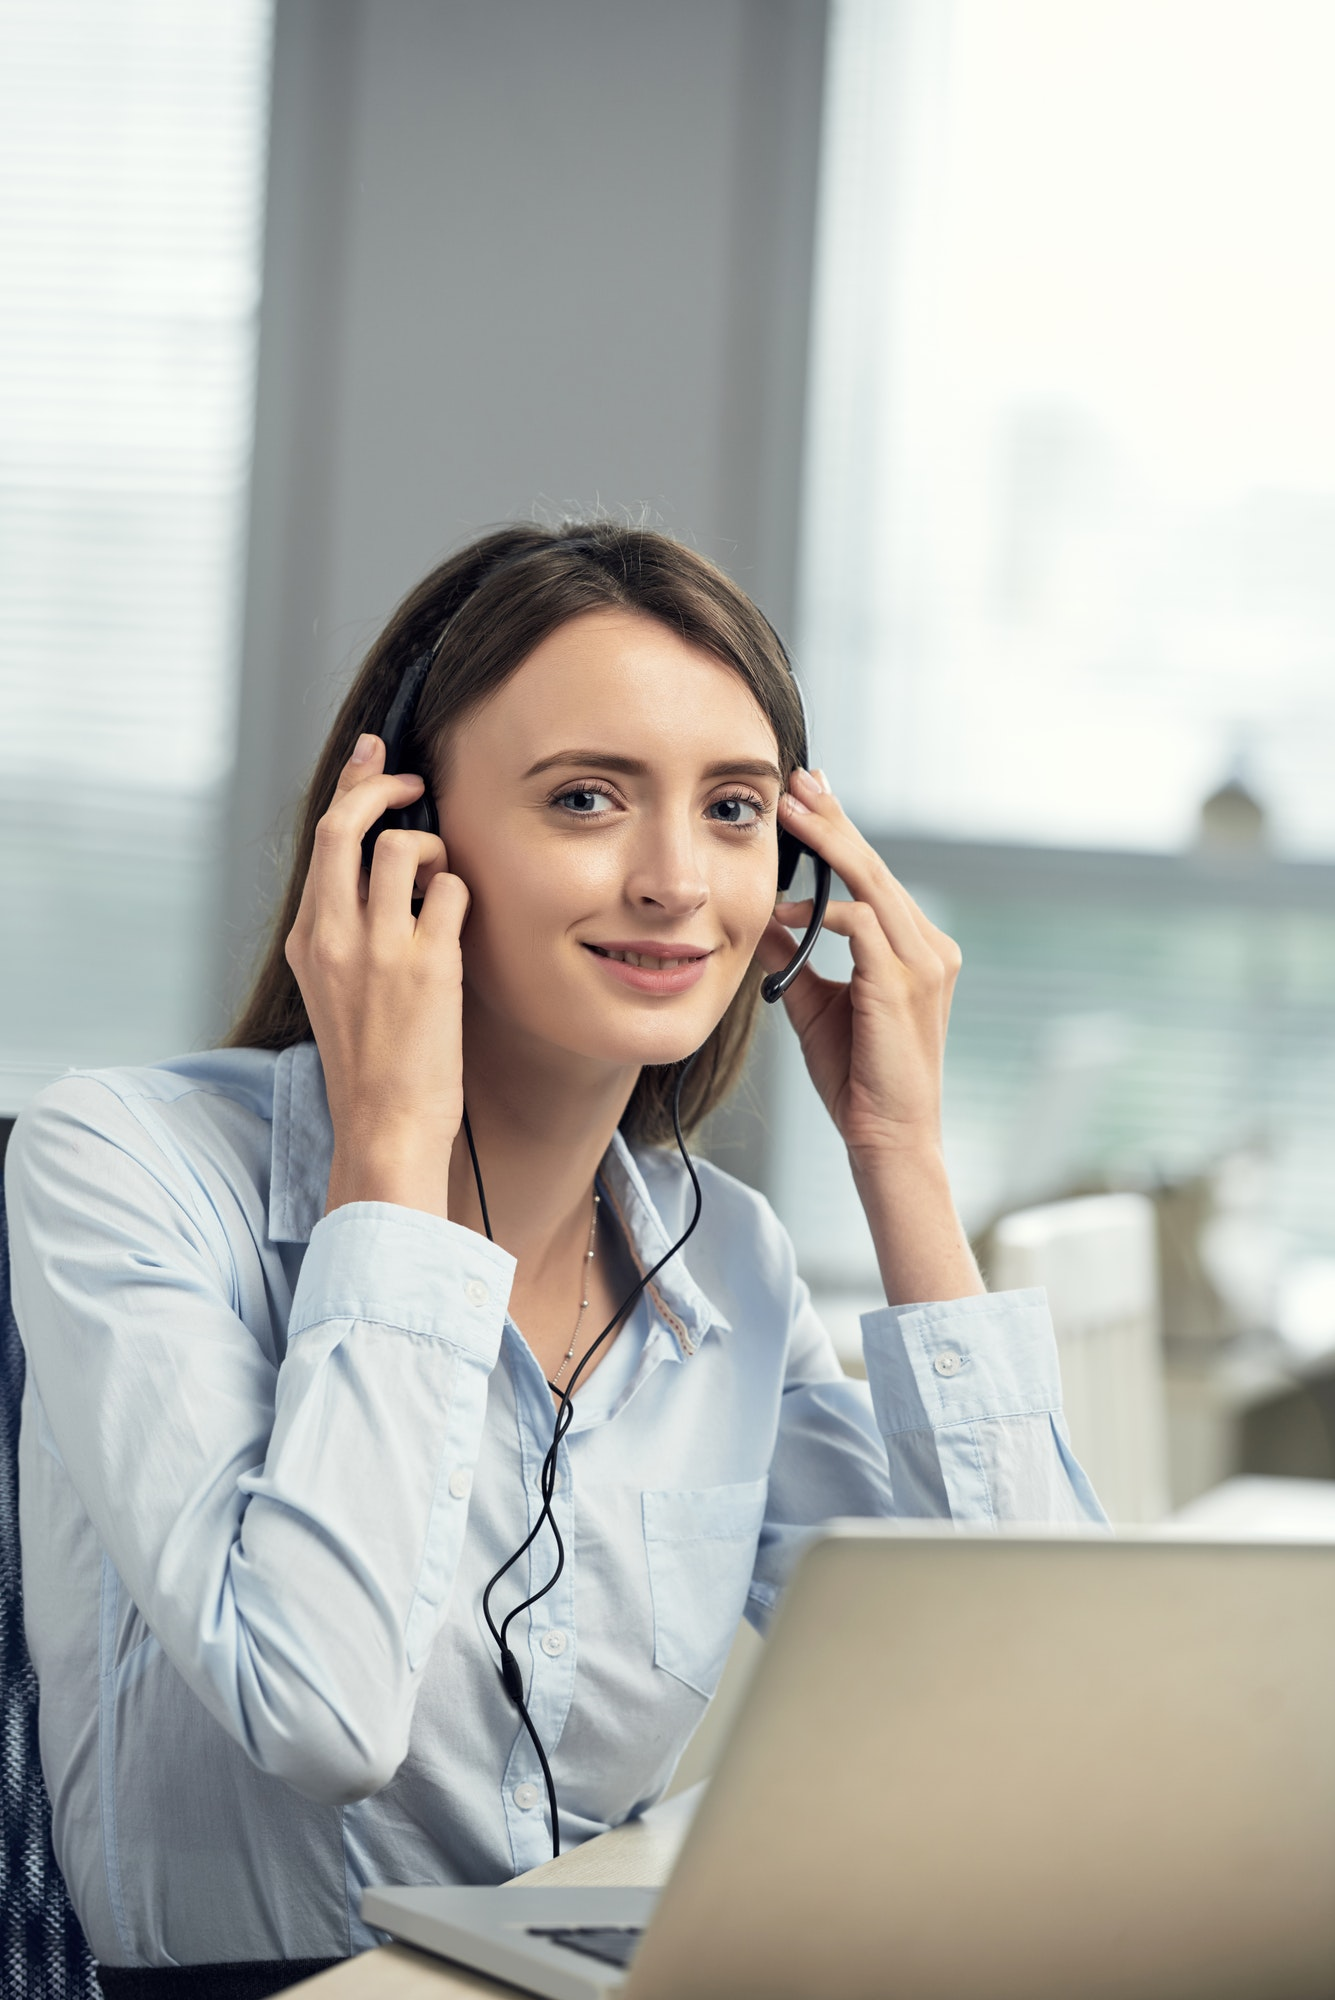 Business lady working in office